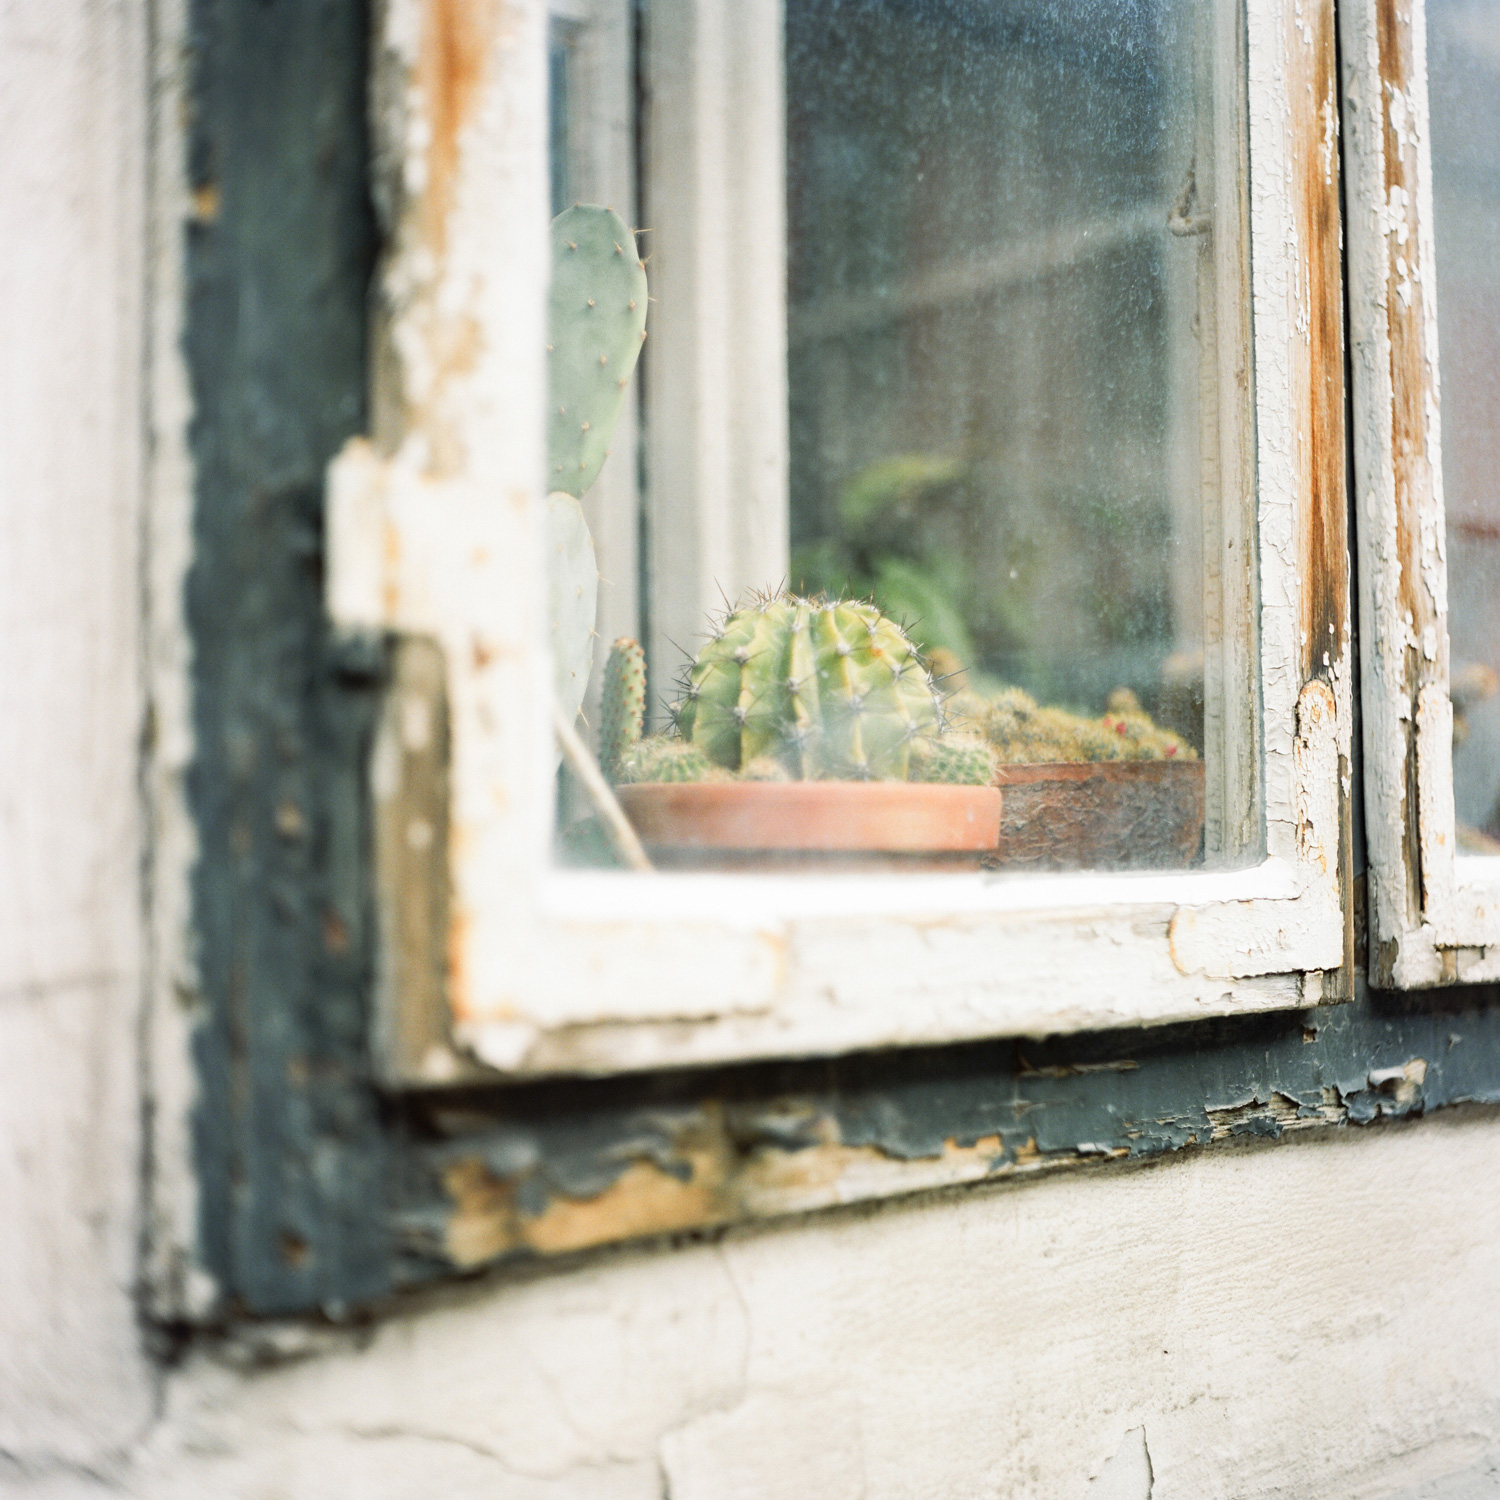 016-katie-mitchell-film-travel-photographer-paris-france-italy-california.jpg